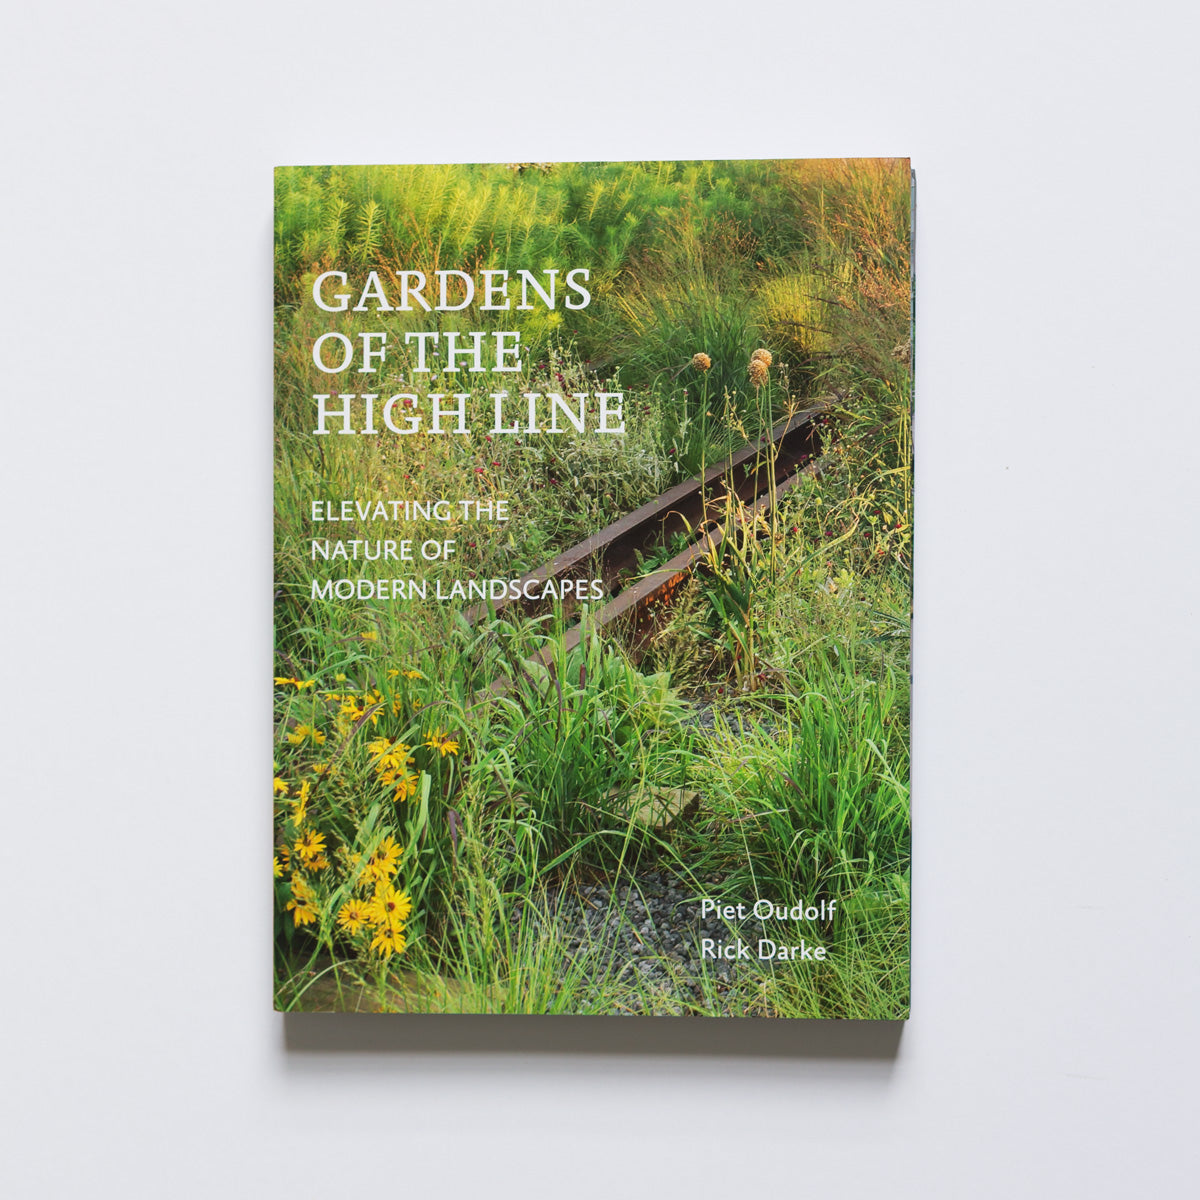 Gardens Of The Highline: Elevating The Nature Of Modern Landscapes By Piet  Oudolf And Rick